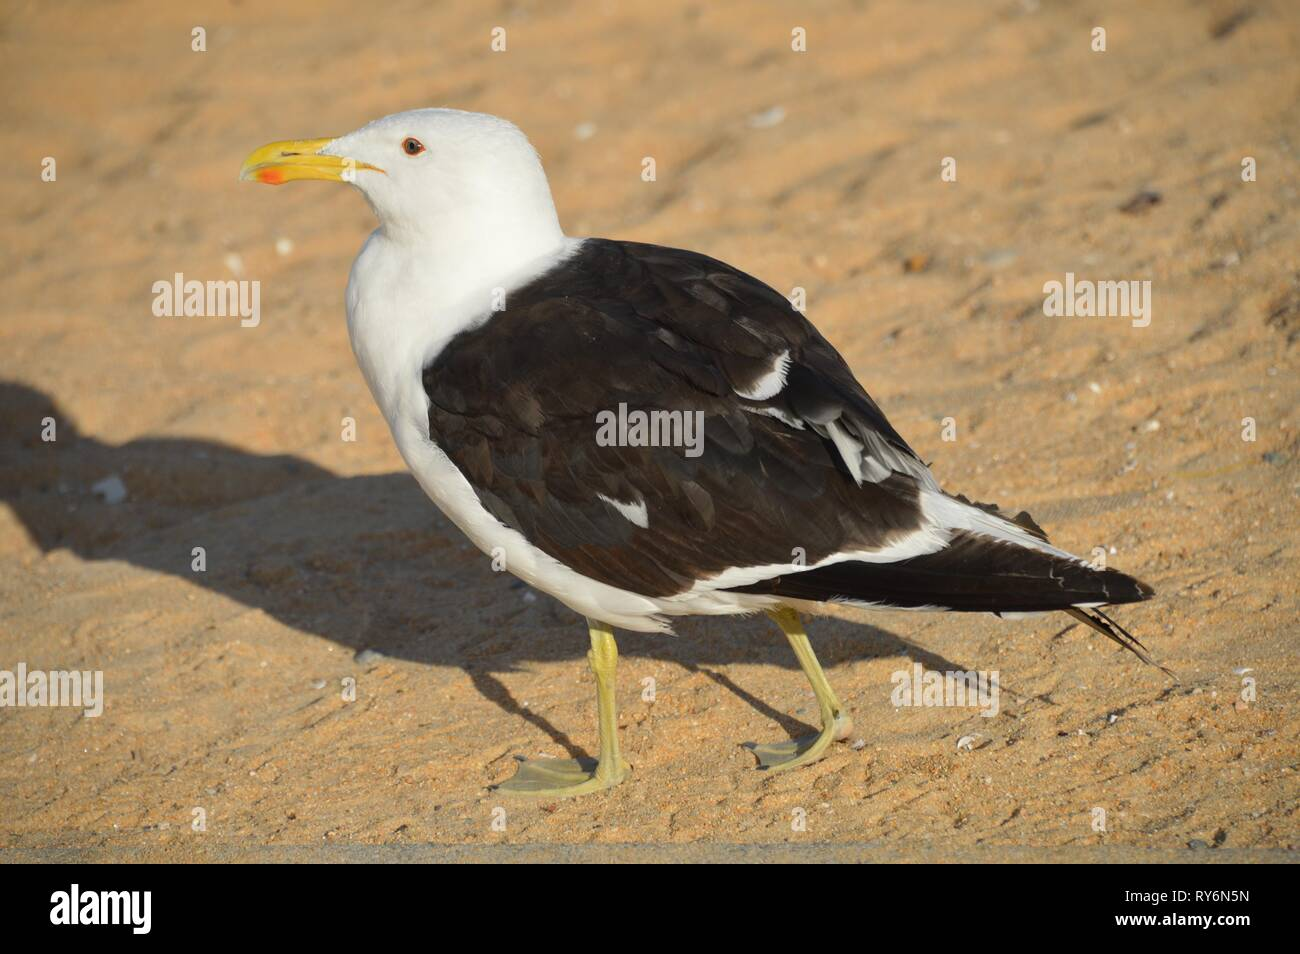 seagull walking on the beach - Stock Image